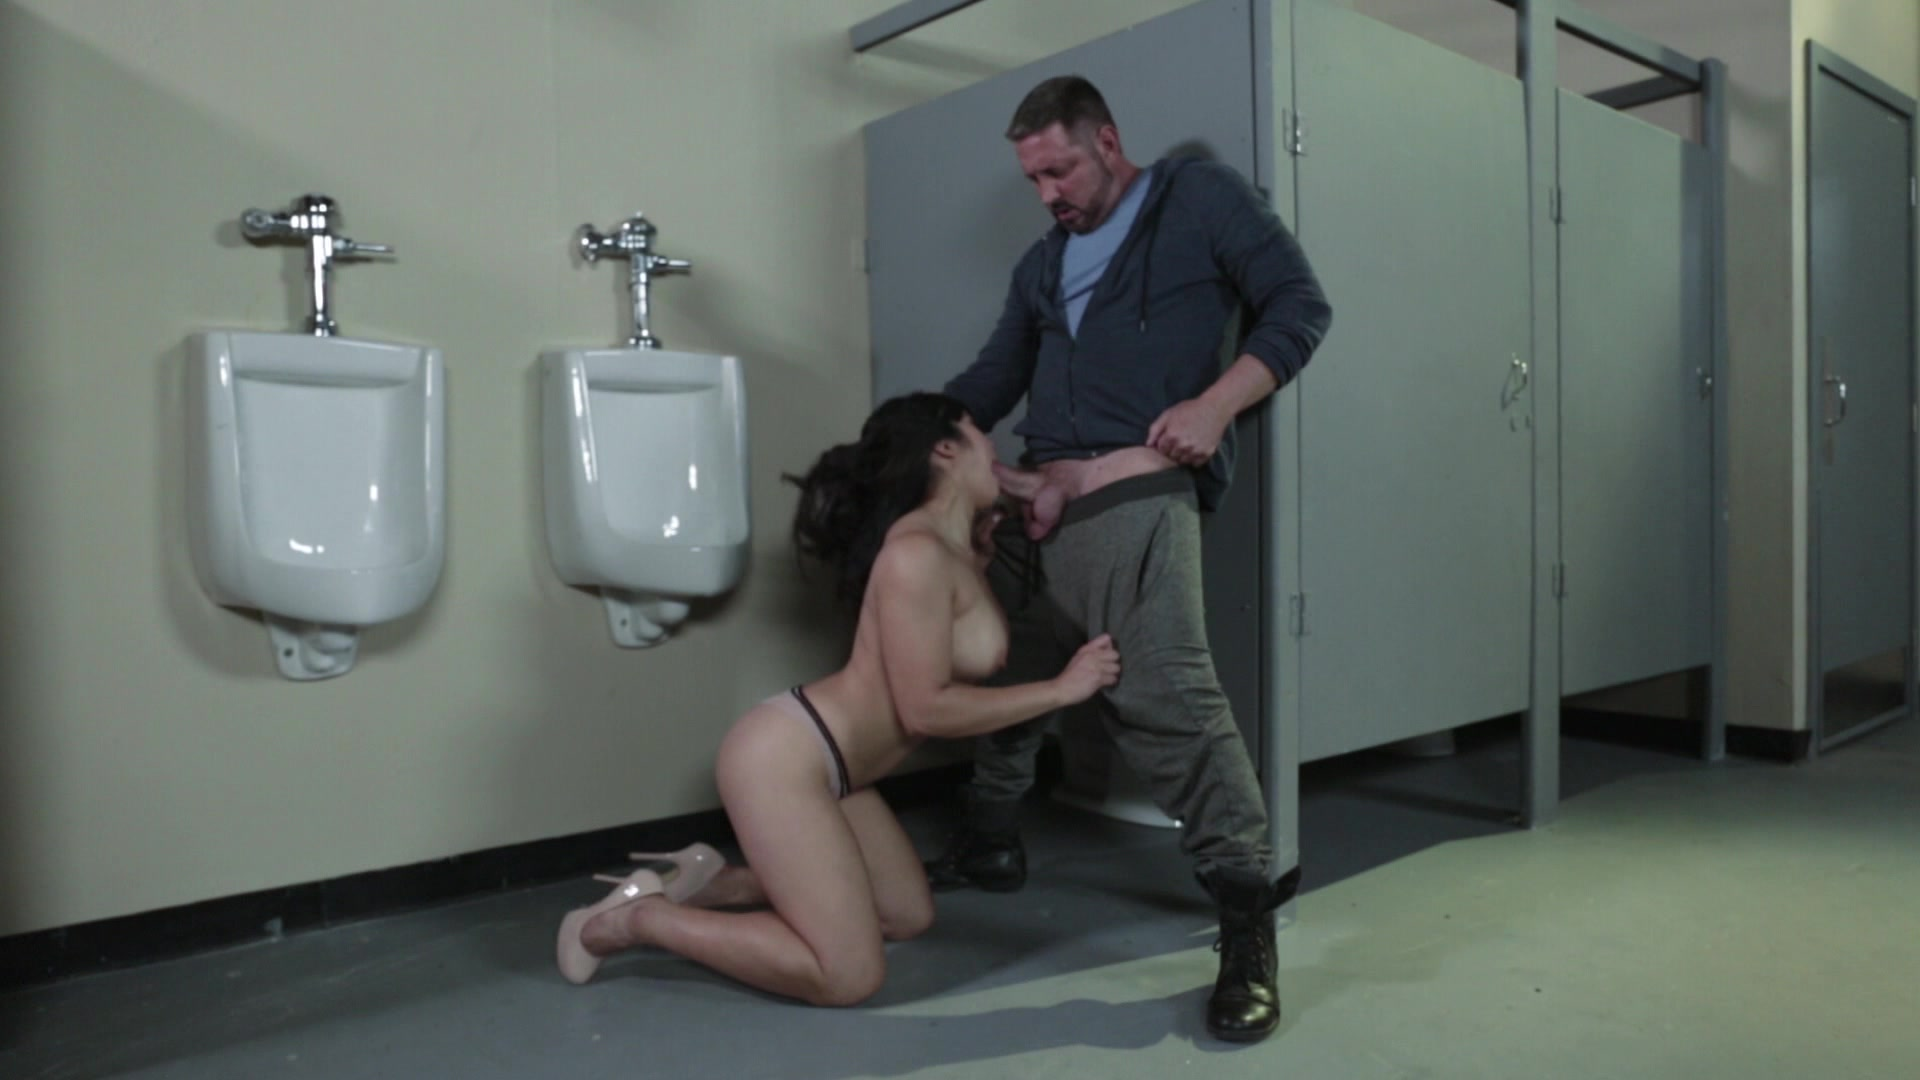 Brad Armstrong Porn Mia Li - Free Video Preview image 3 from J.O.B., The